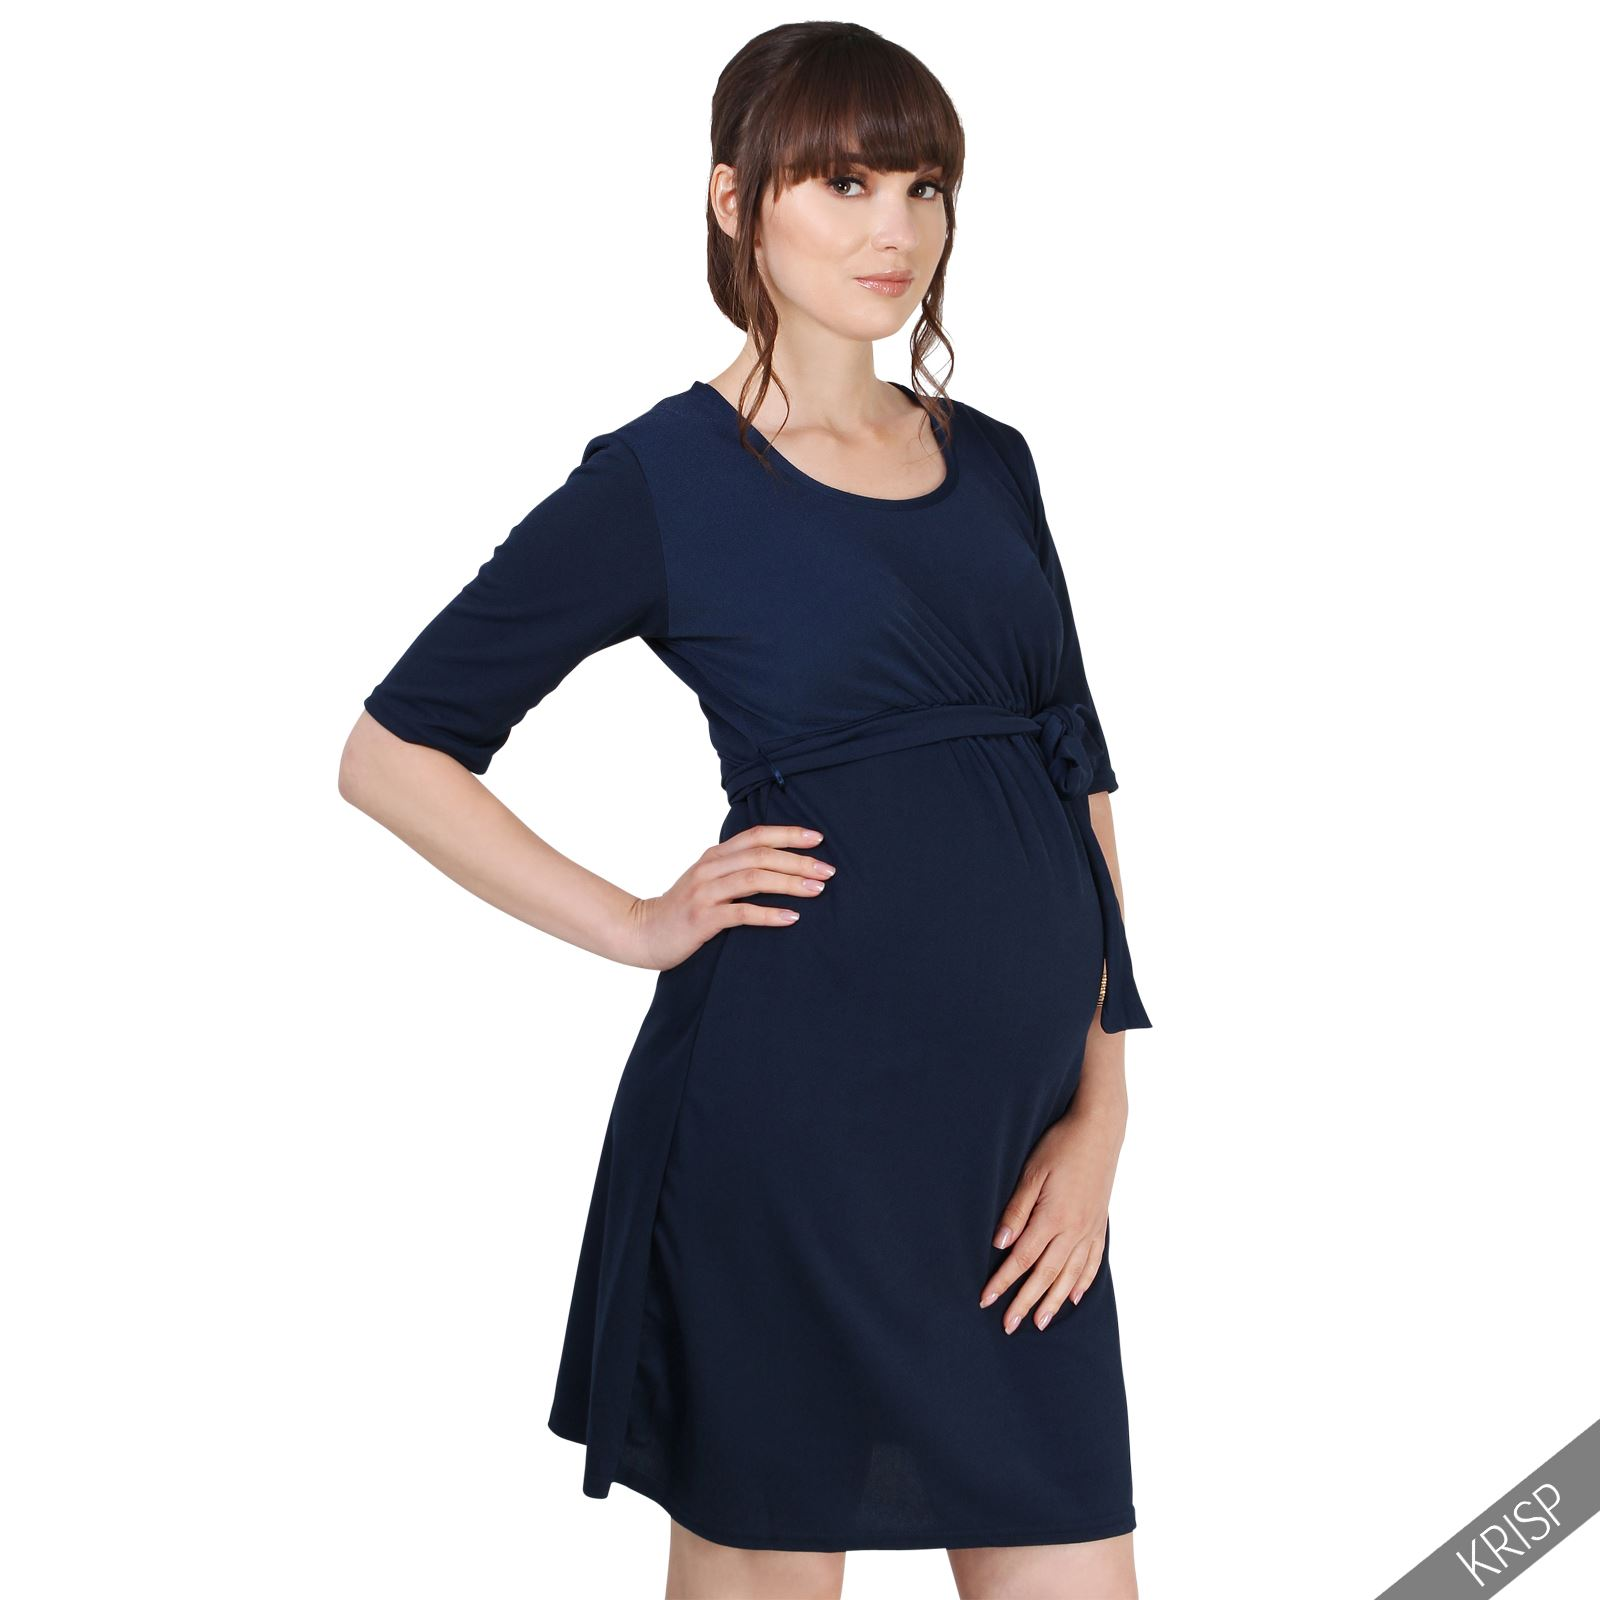 Maternity Clothing Pregnancy Party Dress Short Sleeve Top ...